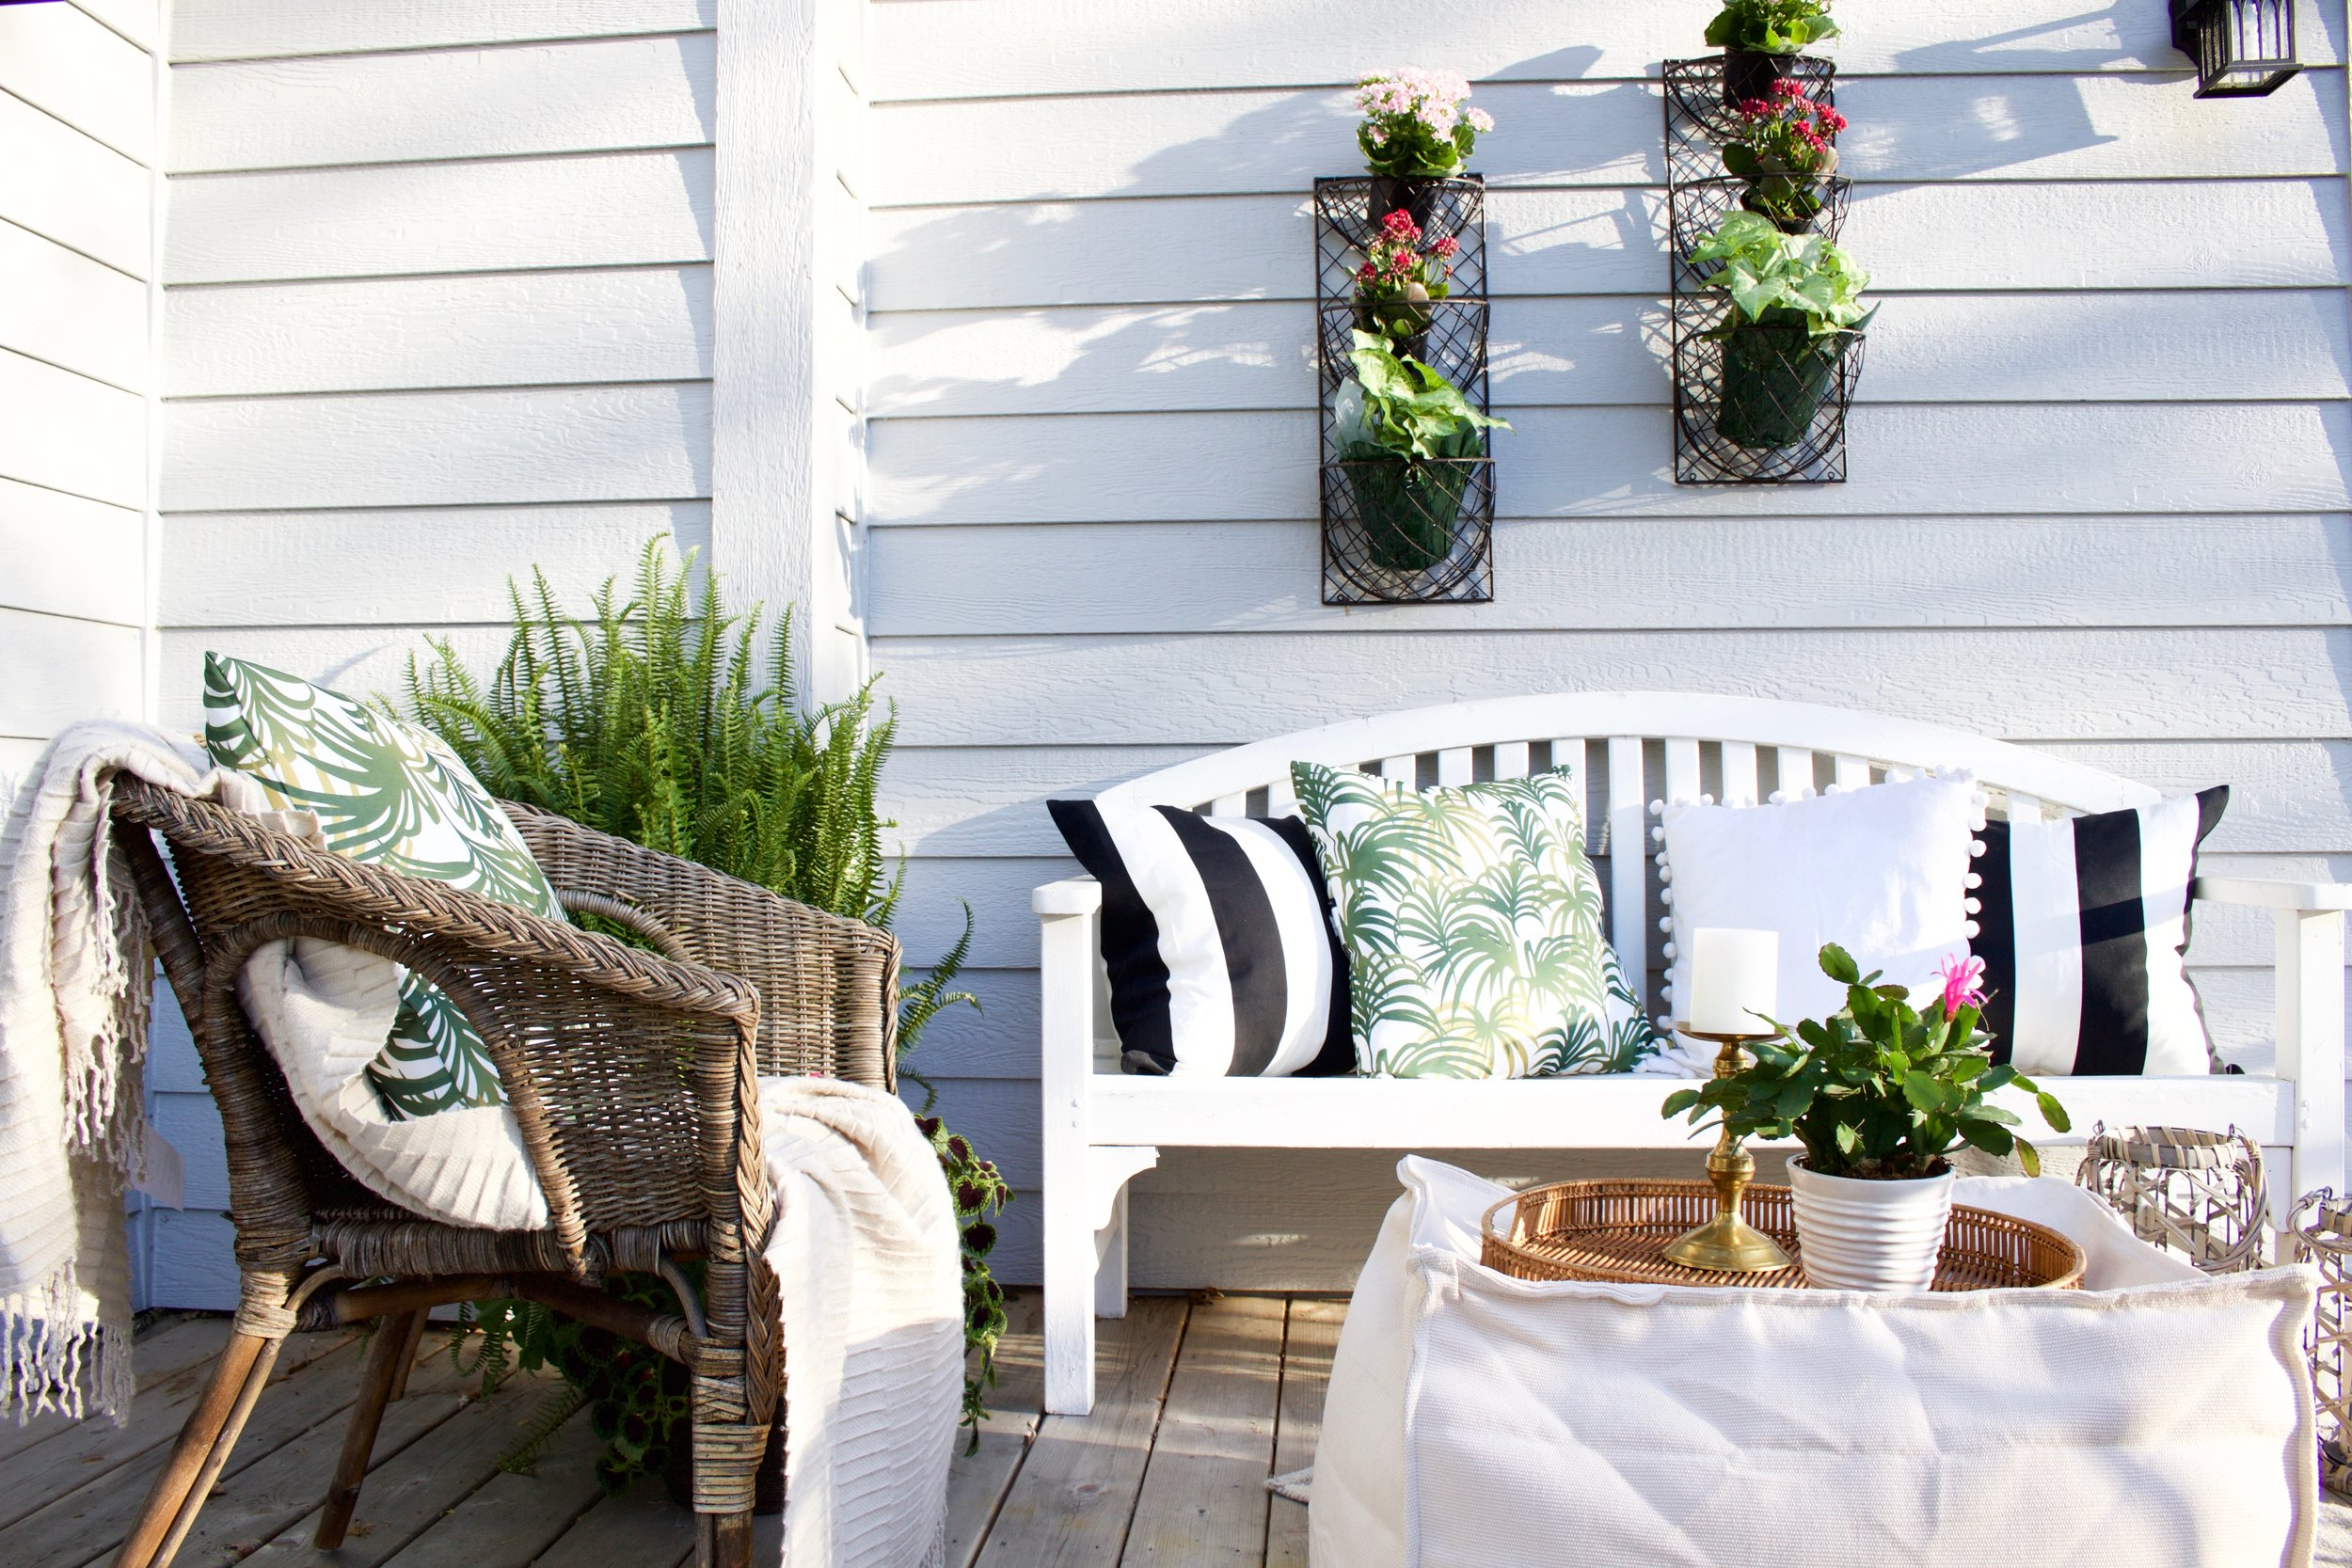 The First Tip To Jazz Up Any Outdoor Is E It Arrange Your Furniture In A Functional Yet Cozy Way We Placed This Wicker Chair Along Side Bench